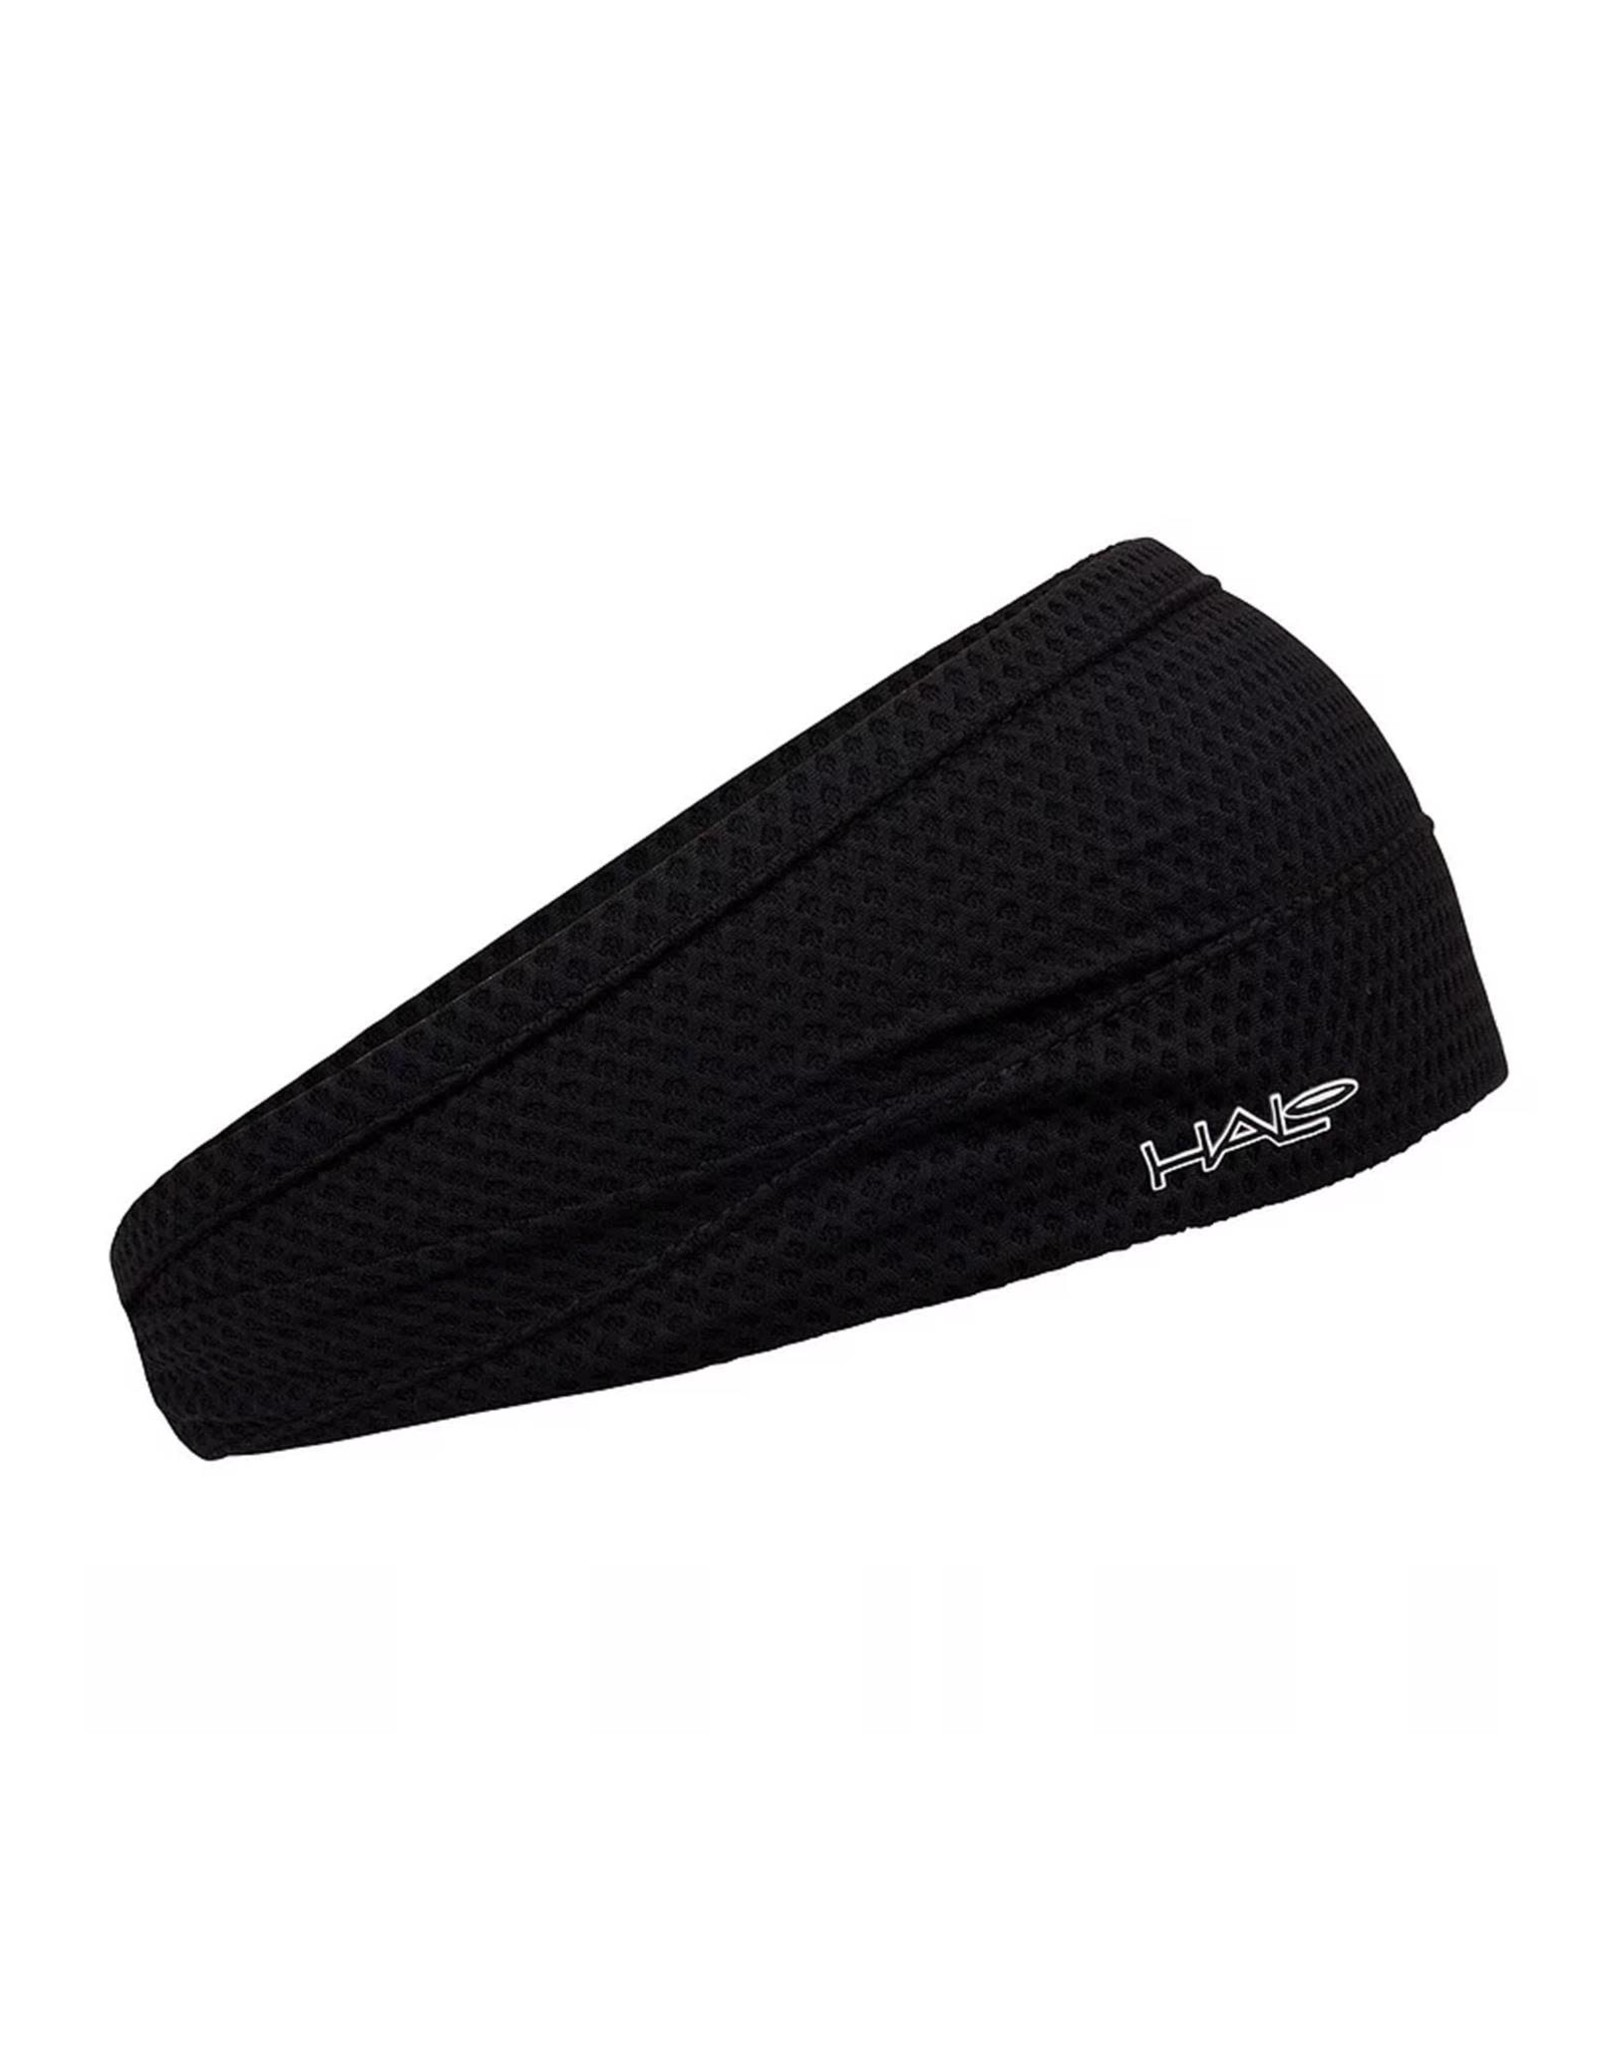 Halo Bandit Air Headband Black